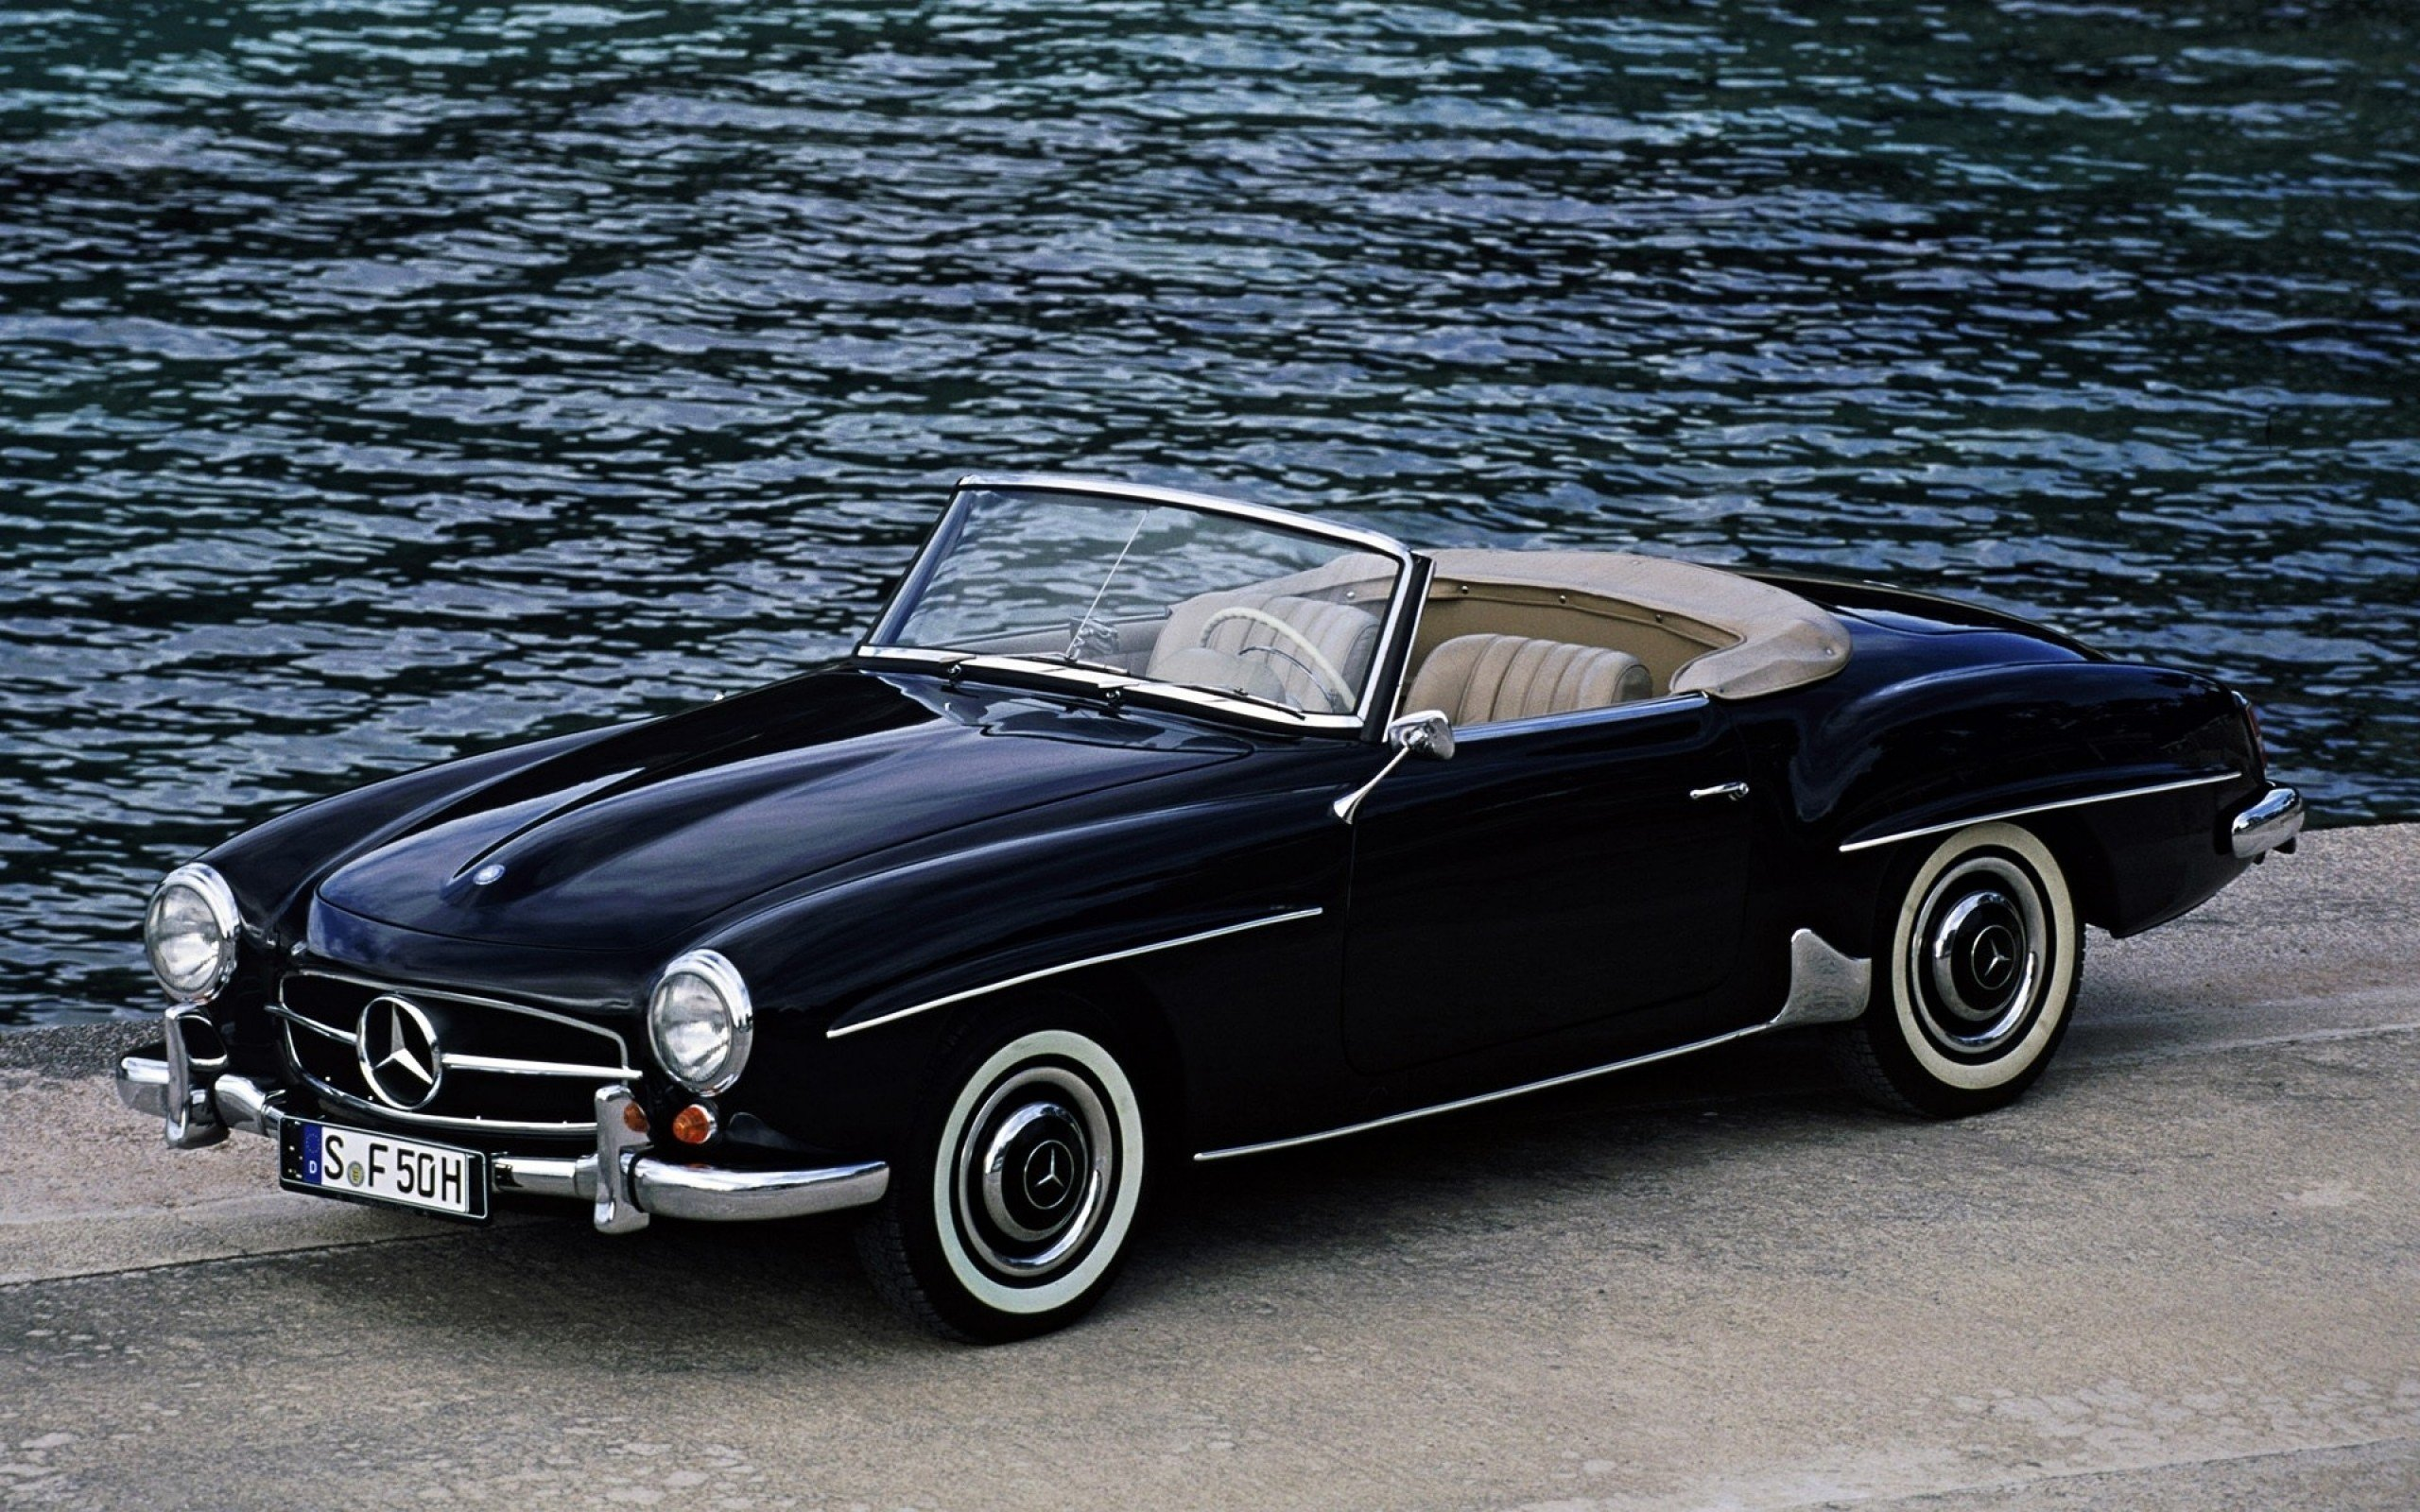 ocean mercedes benz vintage cars old fashion vintage car